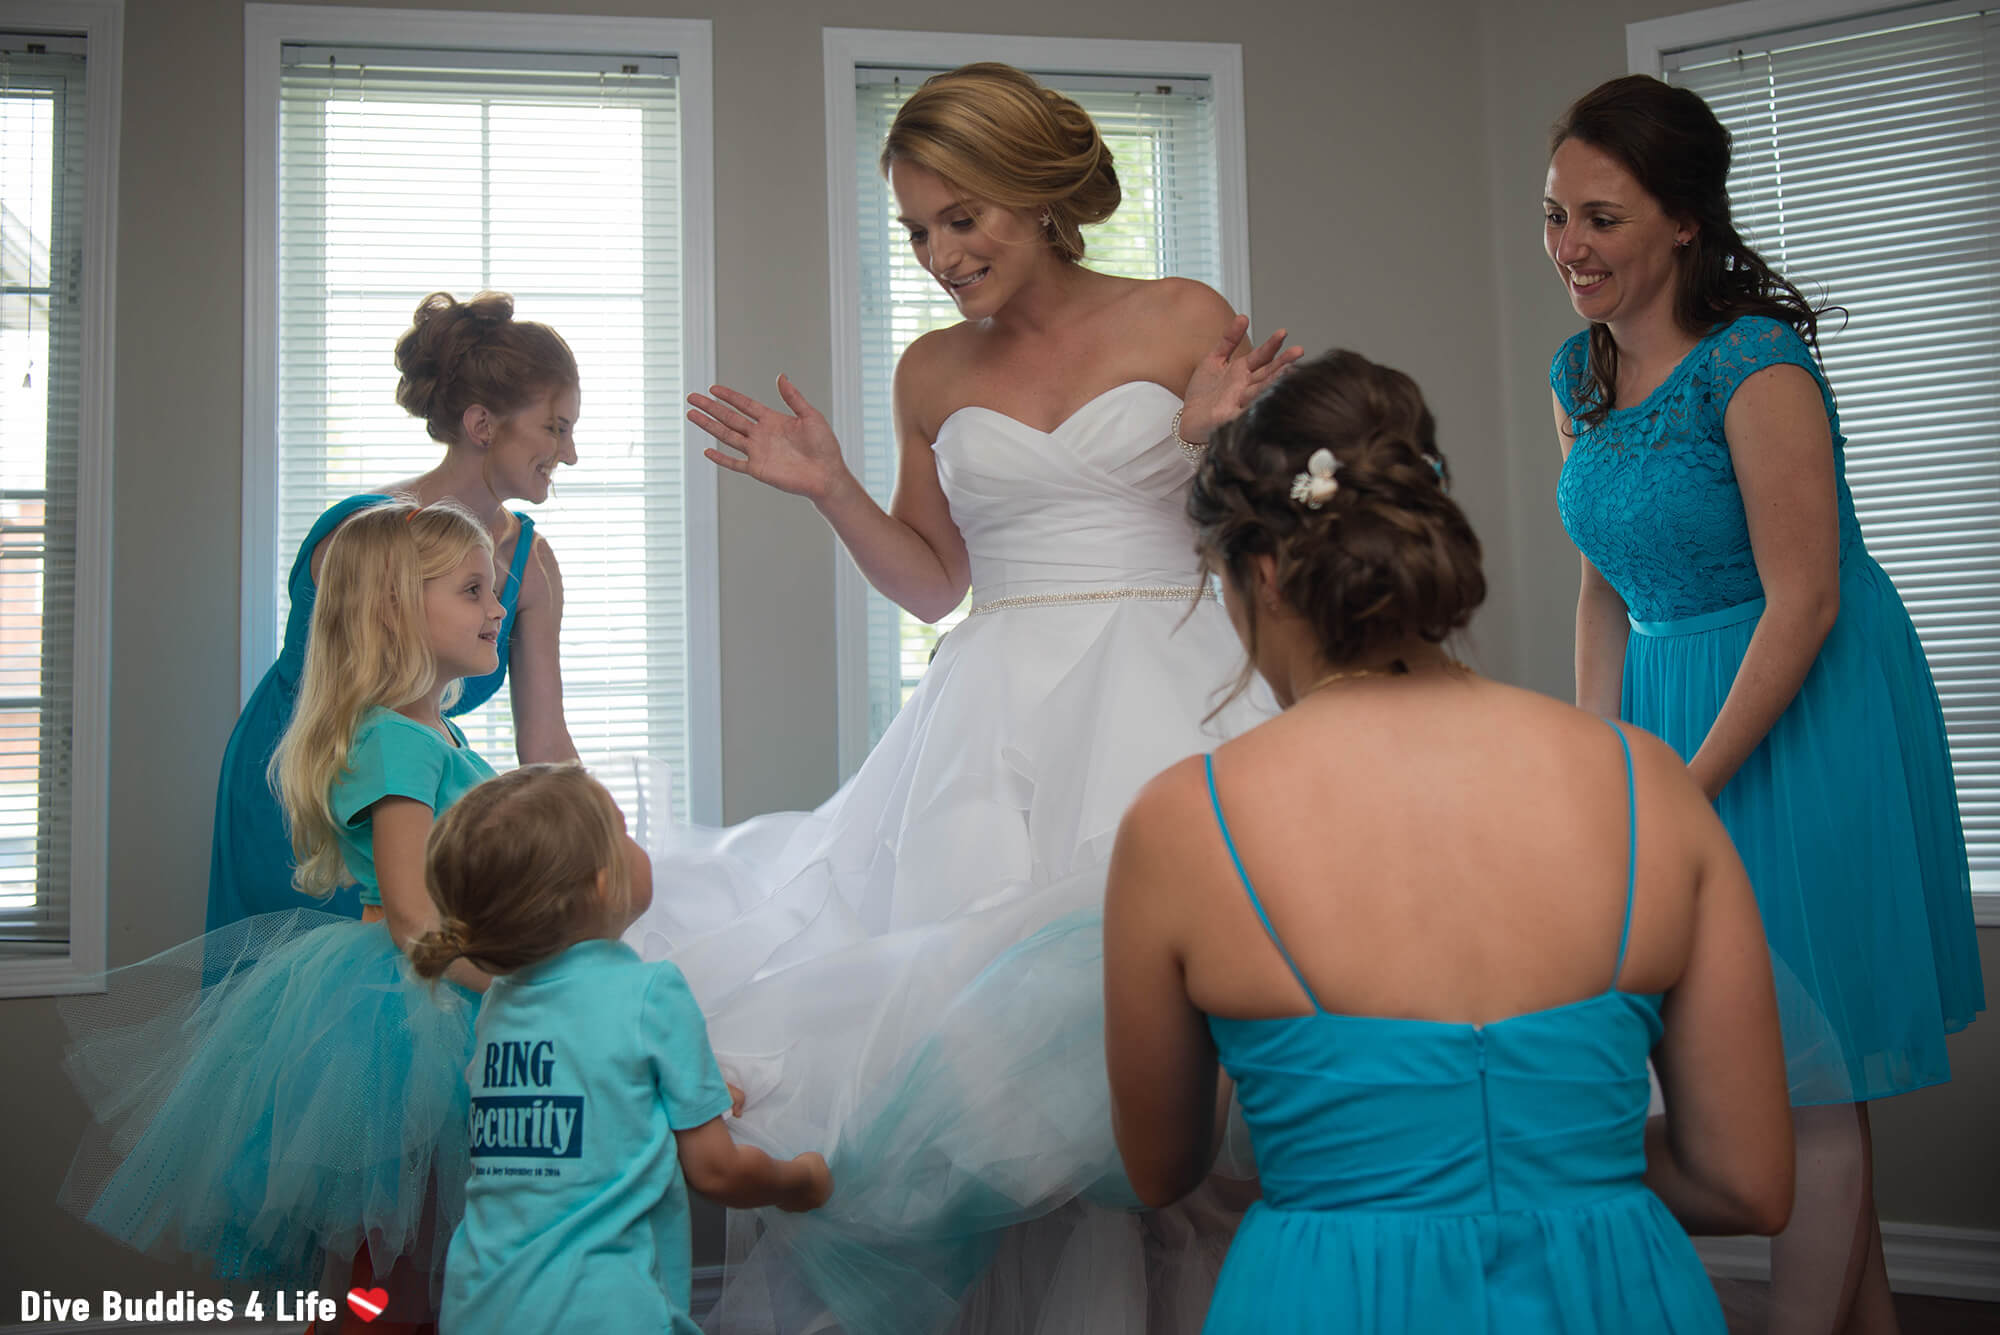 The Wedding Party Showing Off The Brides Scuba Blue Under Her Wedding Dress